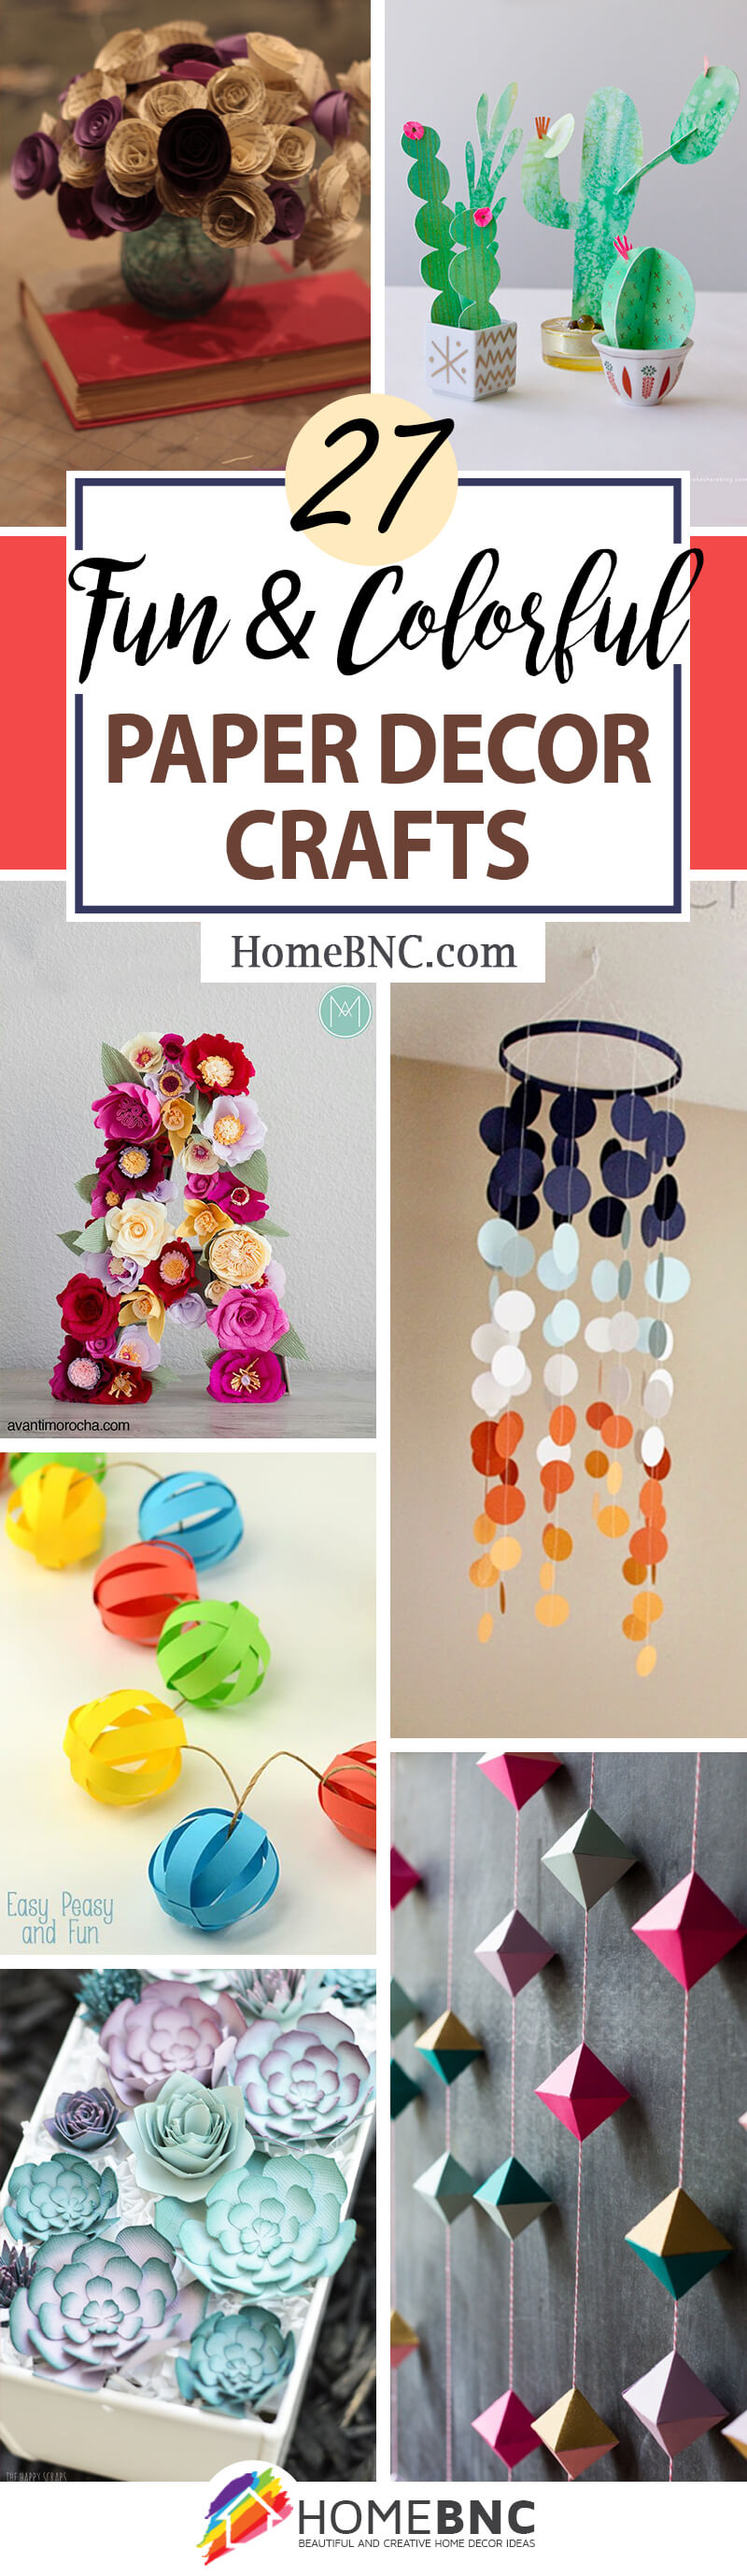 Paper Decor Crafts